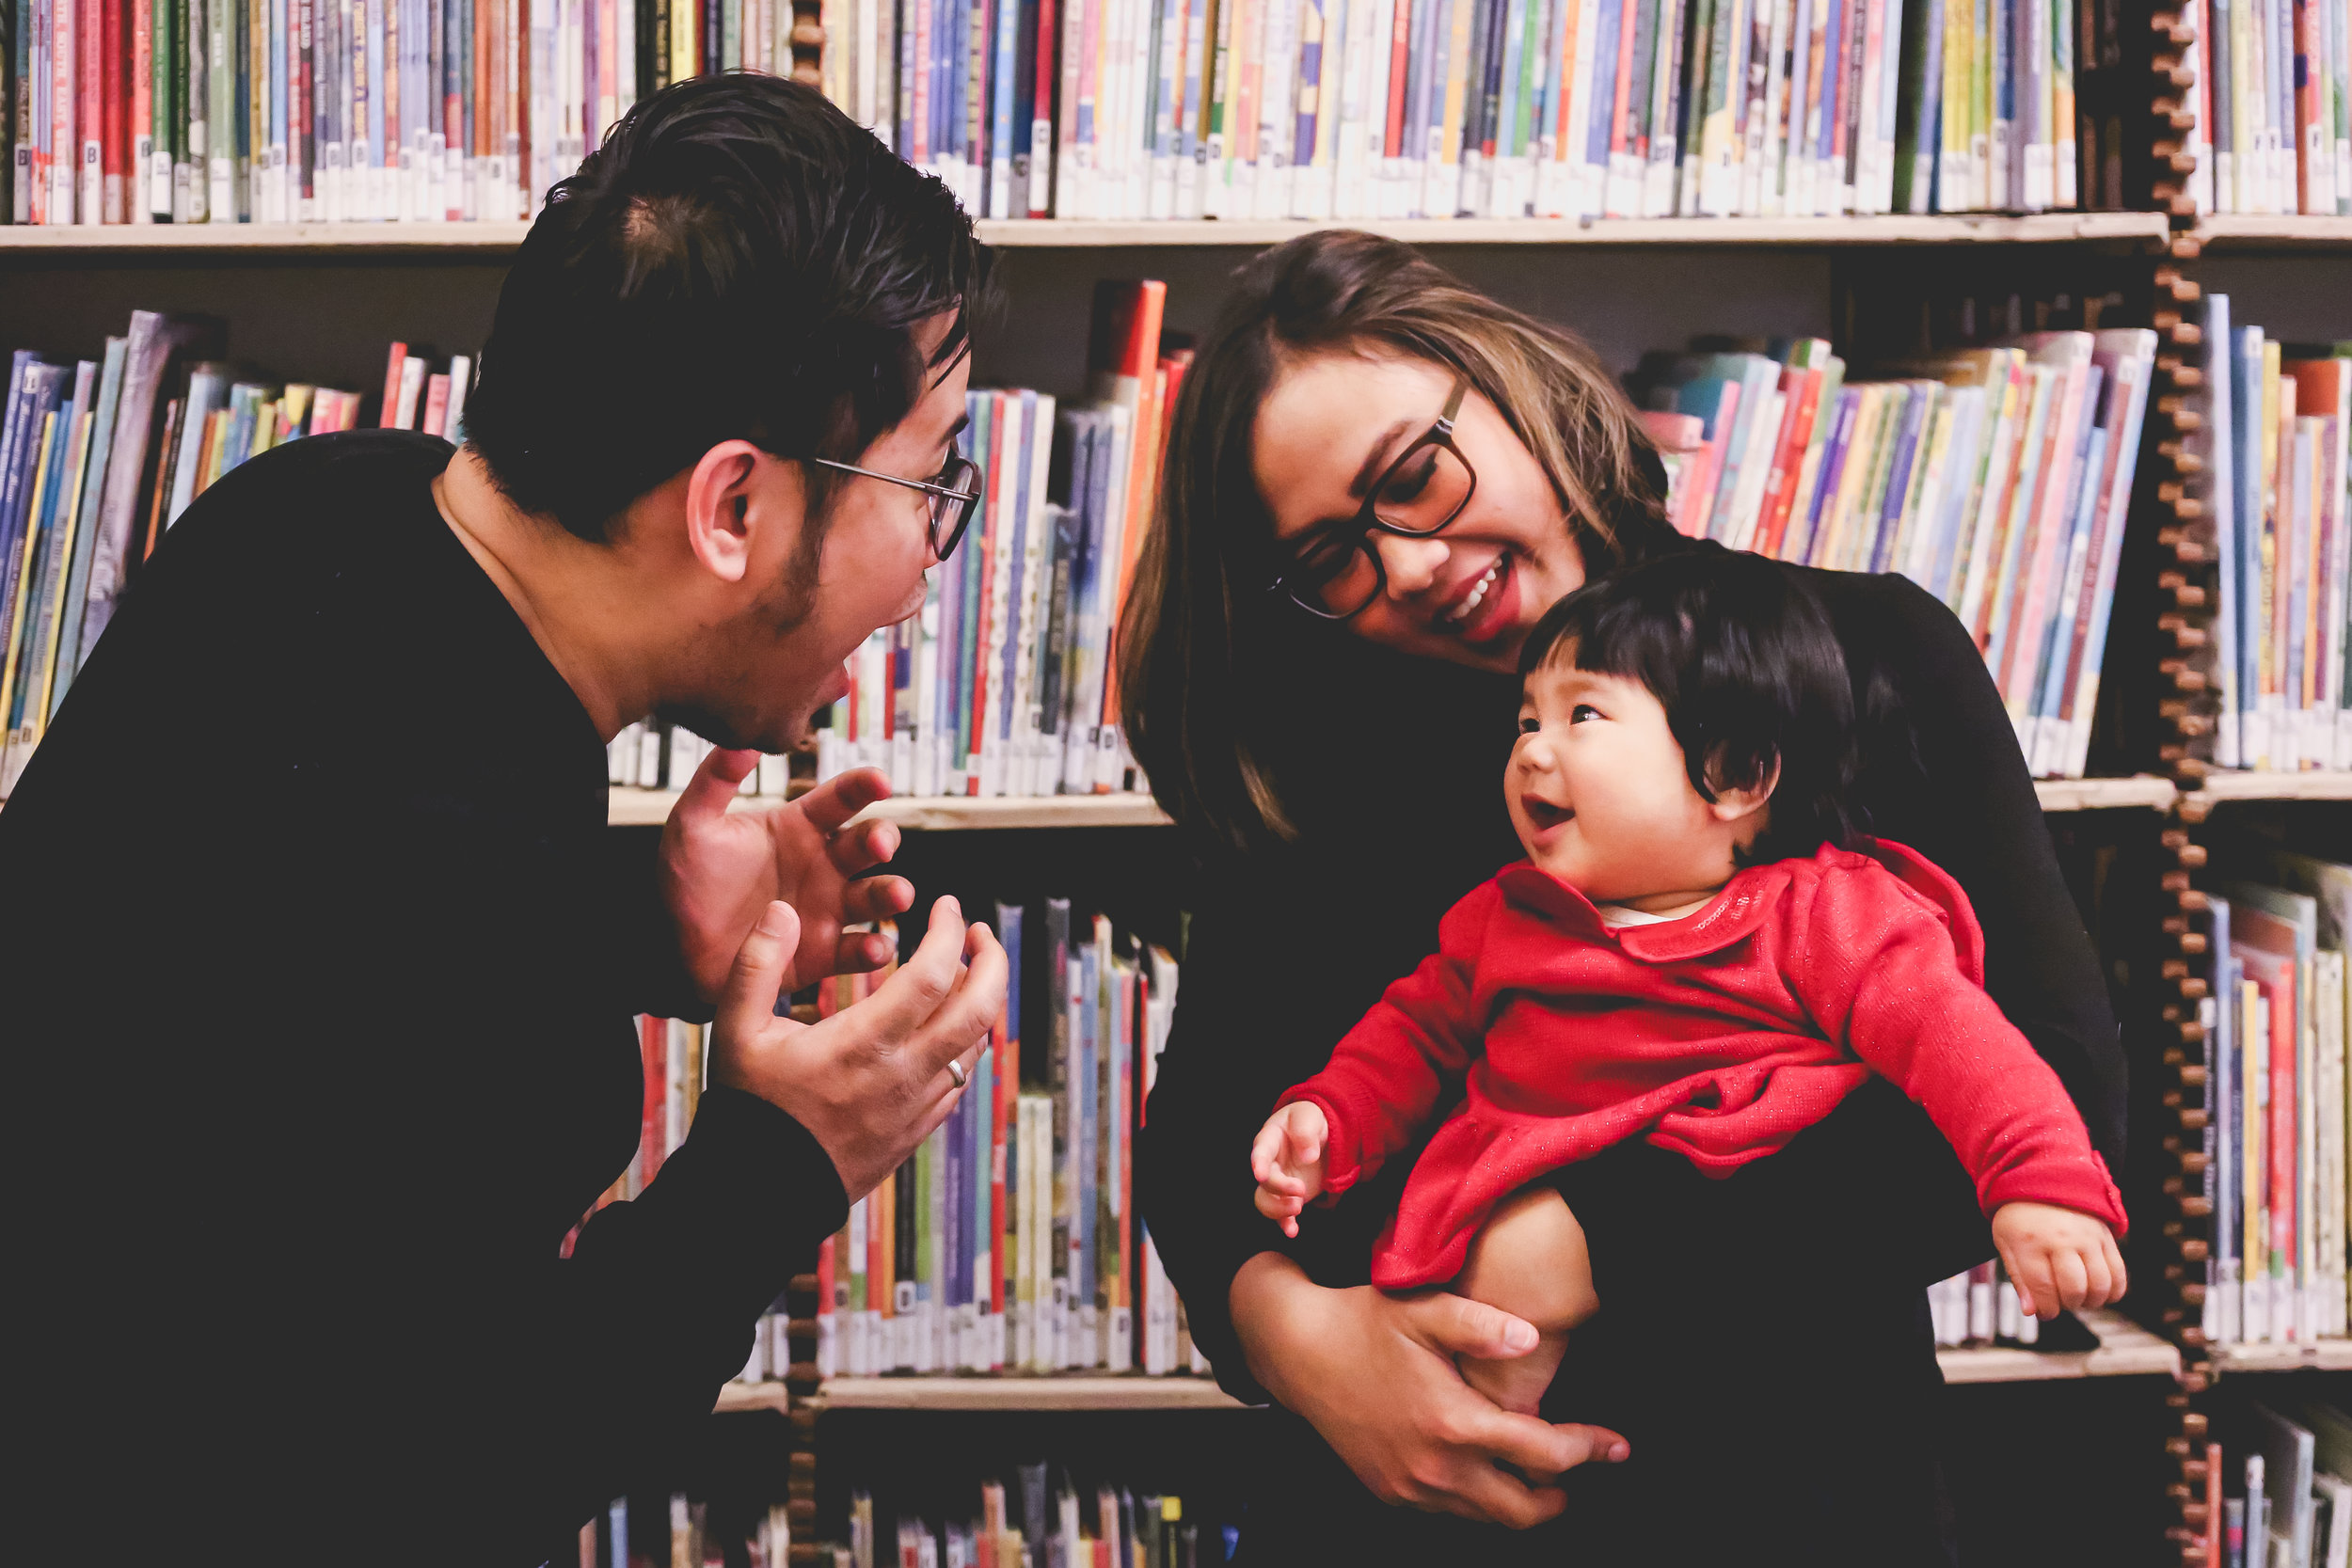 Father playing with his infant daughter at the library.